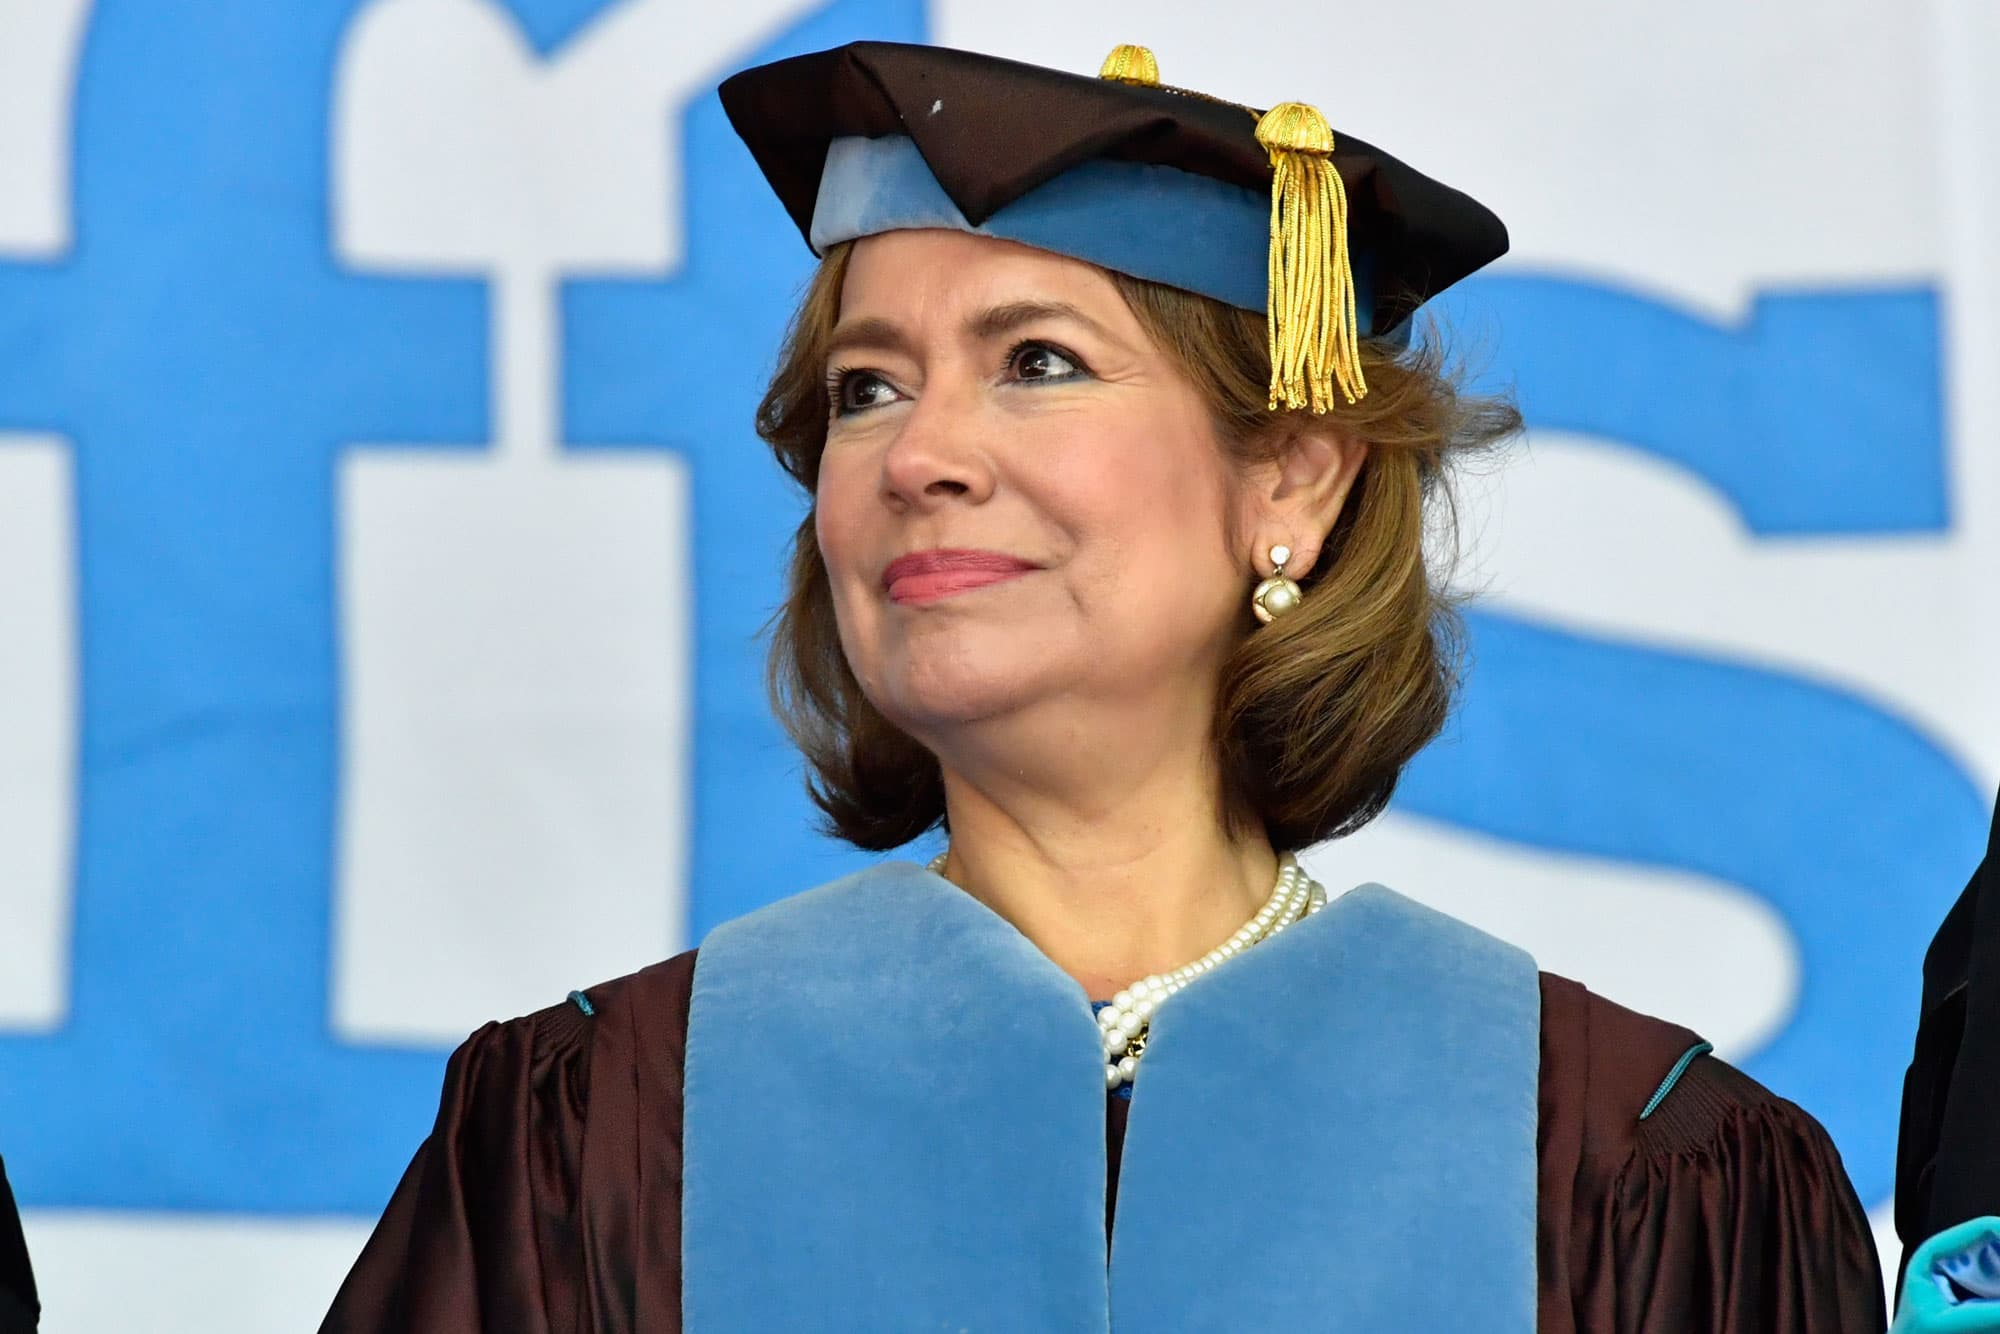 Maria Contreras-Sweet receives an Honorary Doctor of Public Service Degree at the 2017 Tufts University 161st Commencement at Tufts University Green on May 21, 2017 in Medford, Massachusetts.